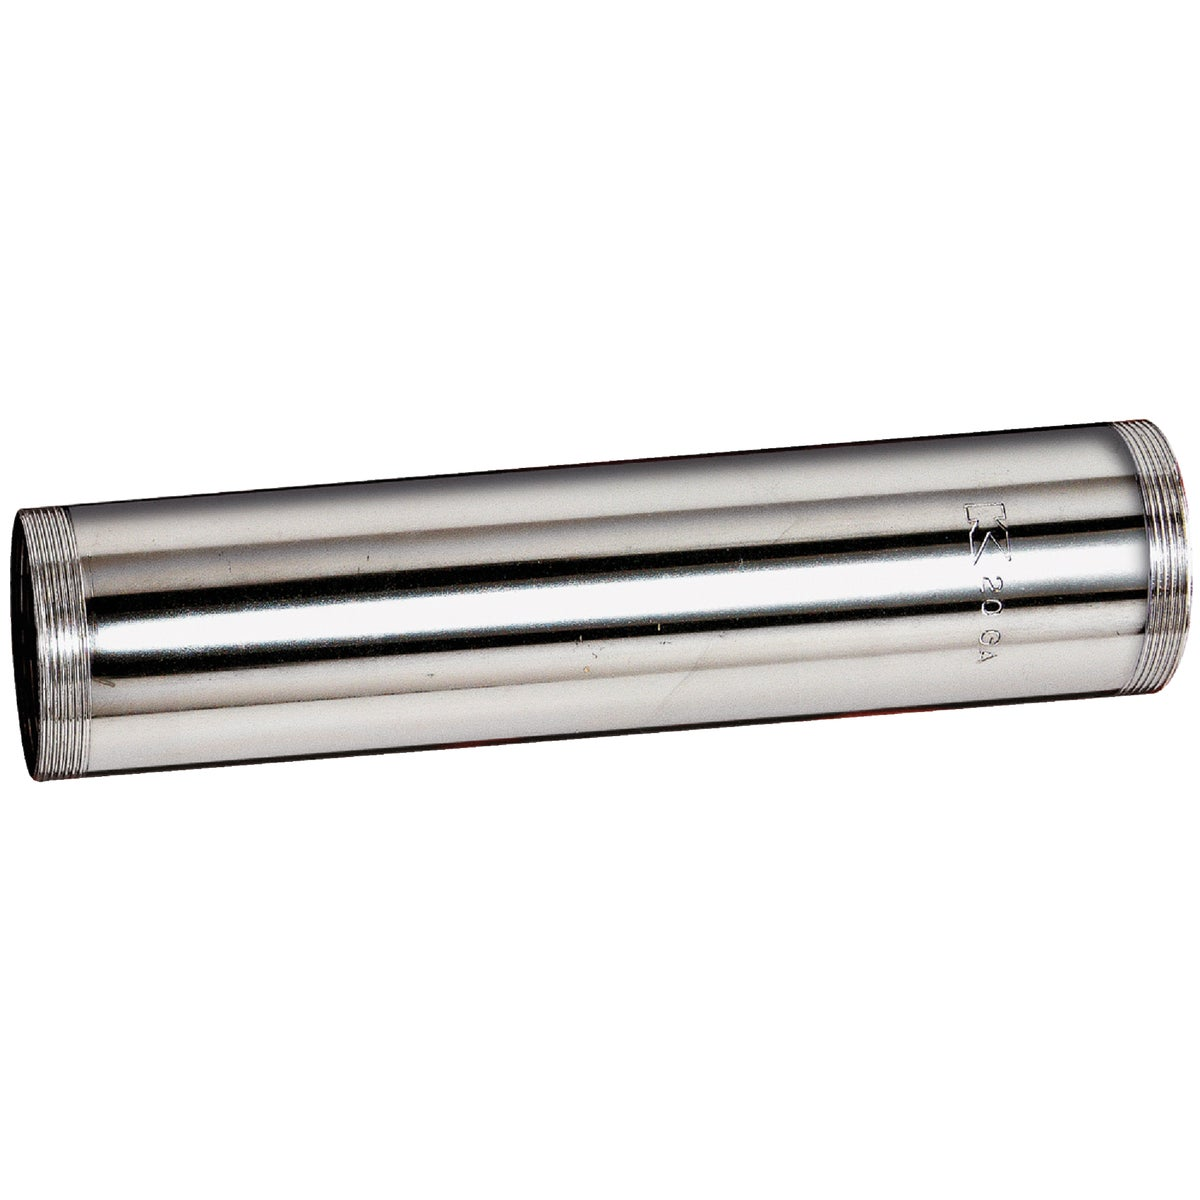 1-1/4X6 THREADED TUBE - 1120K by Plumb Pak/keeney Mfg